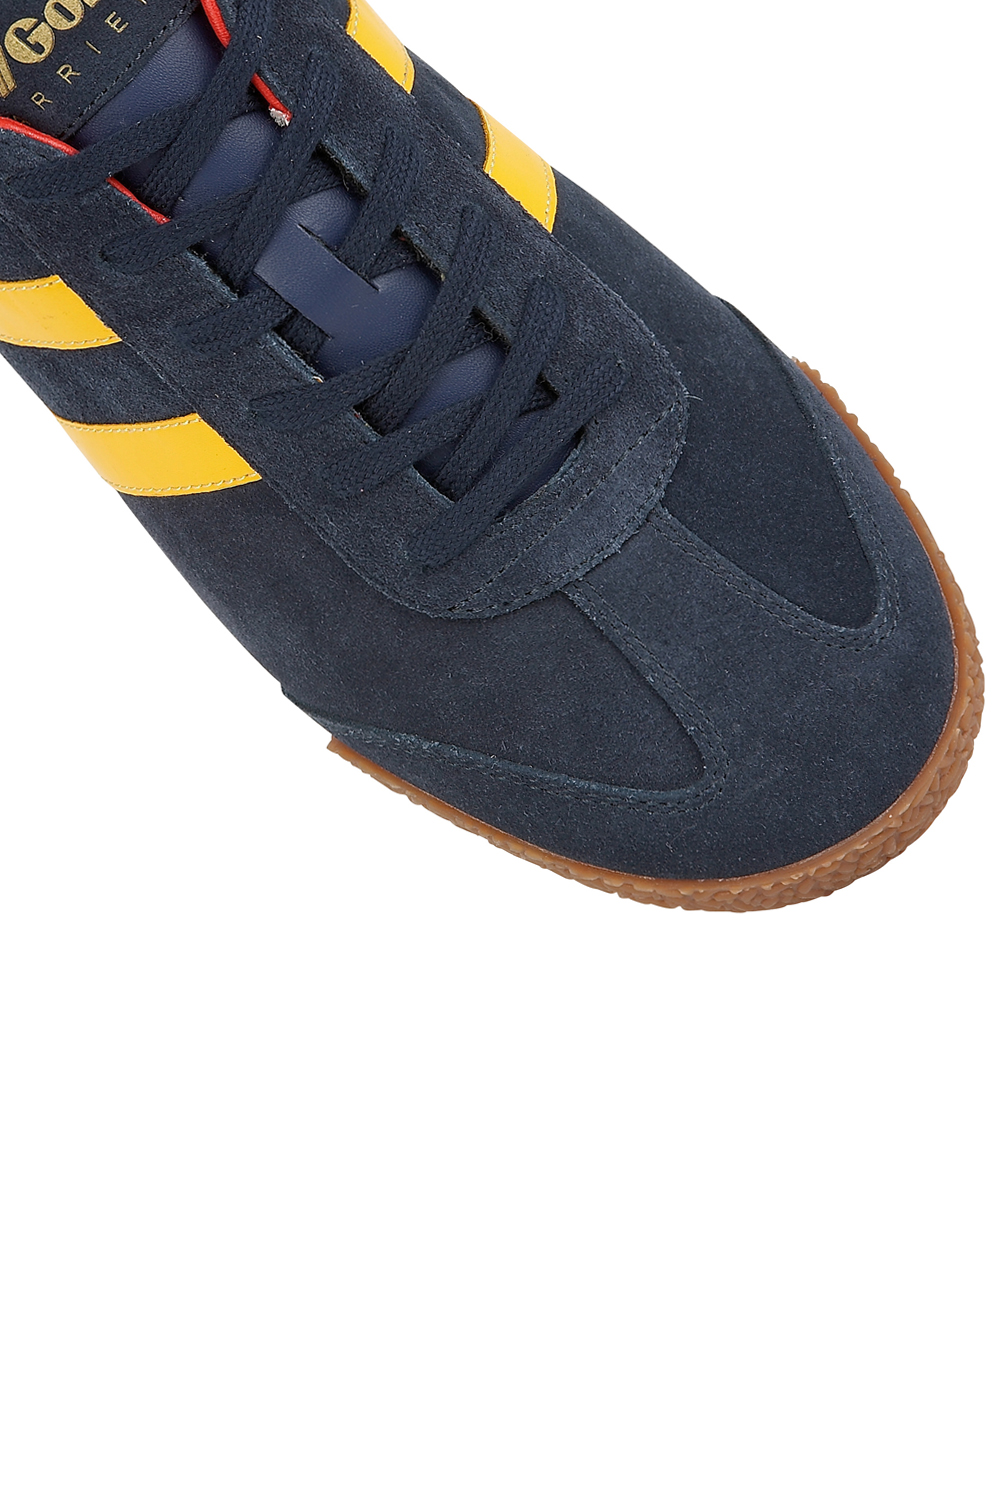 thumbnail 12 - Gola Harrier Suede Classic Vintage Lace-Up Sneakers Mens Trainers Low Top Shoes